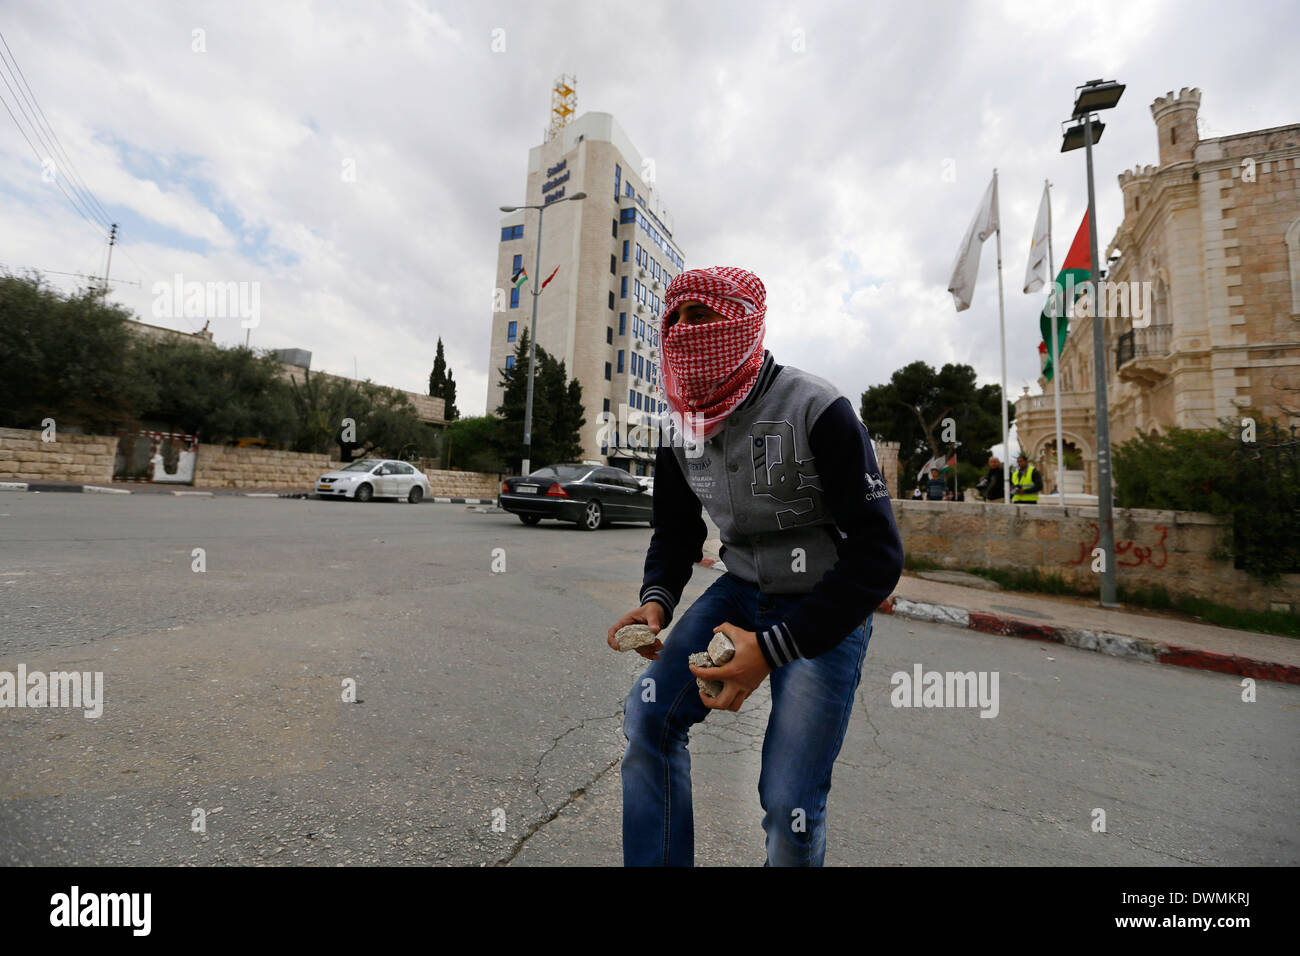 Masked Palestinian throwing stones at the Israeli soldiers, during clashes. - Stock Image